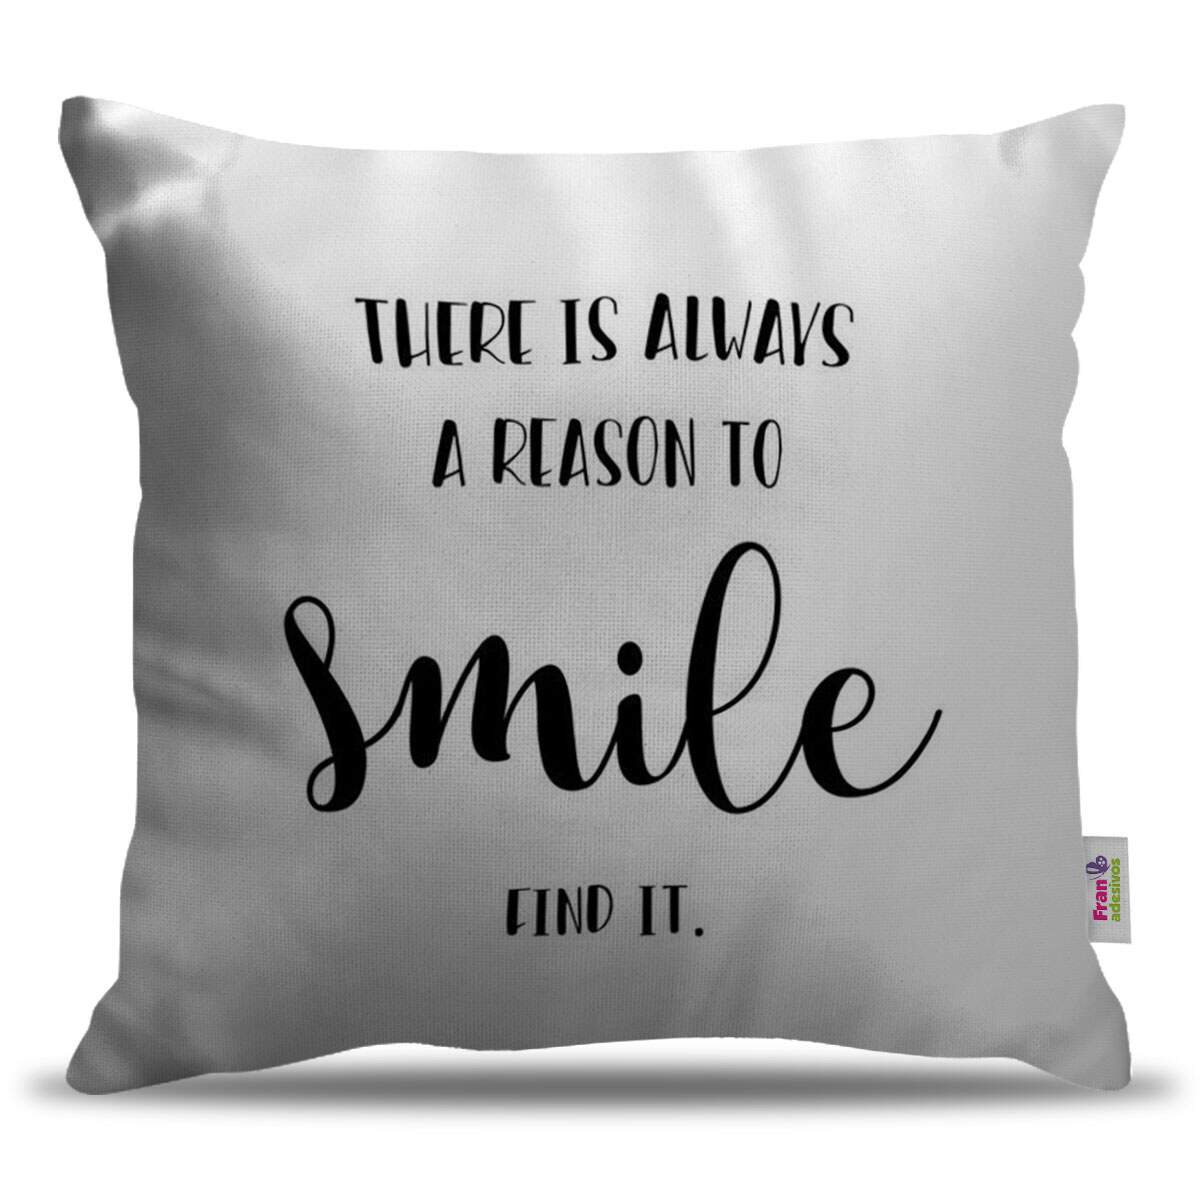 Almofada Decorativa There Is Always A Reason To Smile